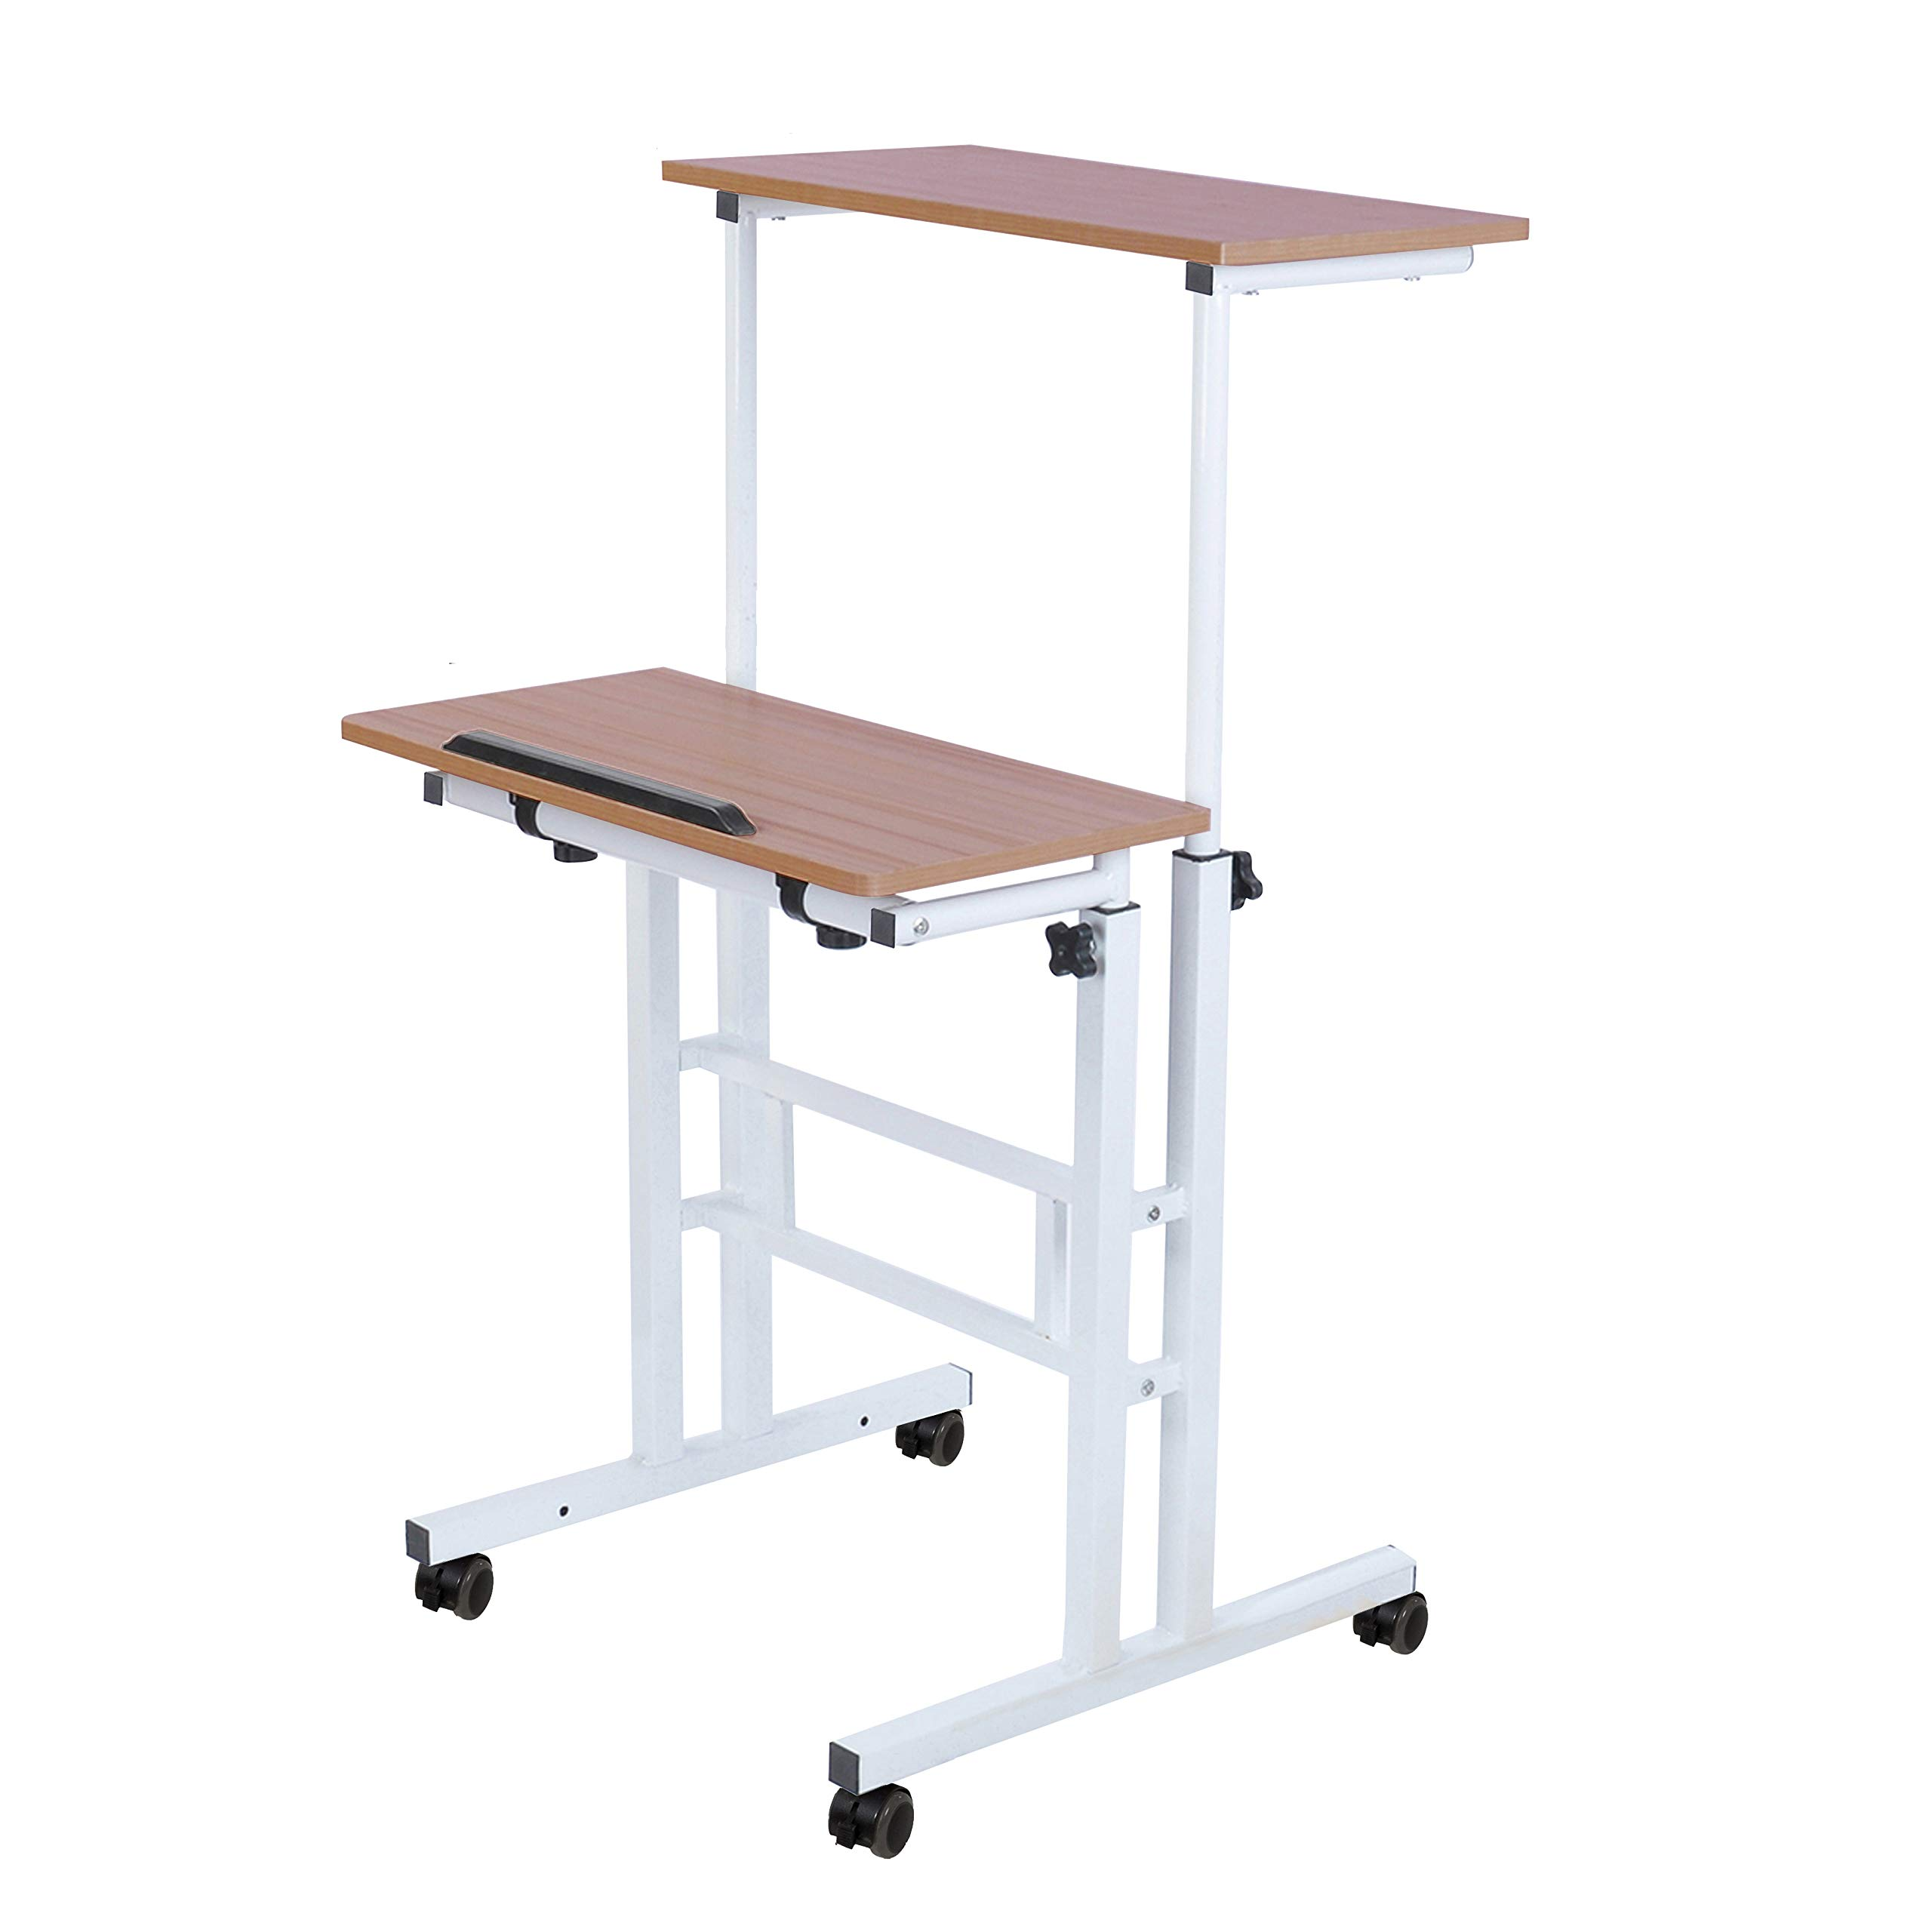 SDADI 2 Inches Carpet Wheel Mobile Standing Desk Stand Up Desk Height Adjustable Home Office Desk with Standing and Seating 2 Modes 3.0 Edition, Dark Grain